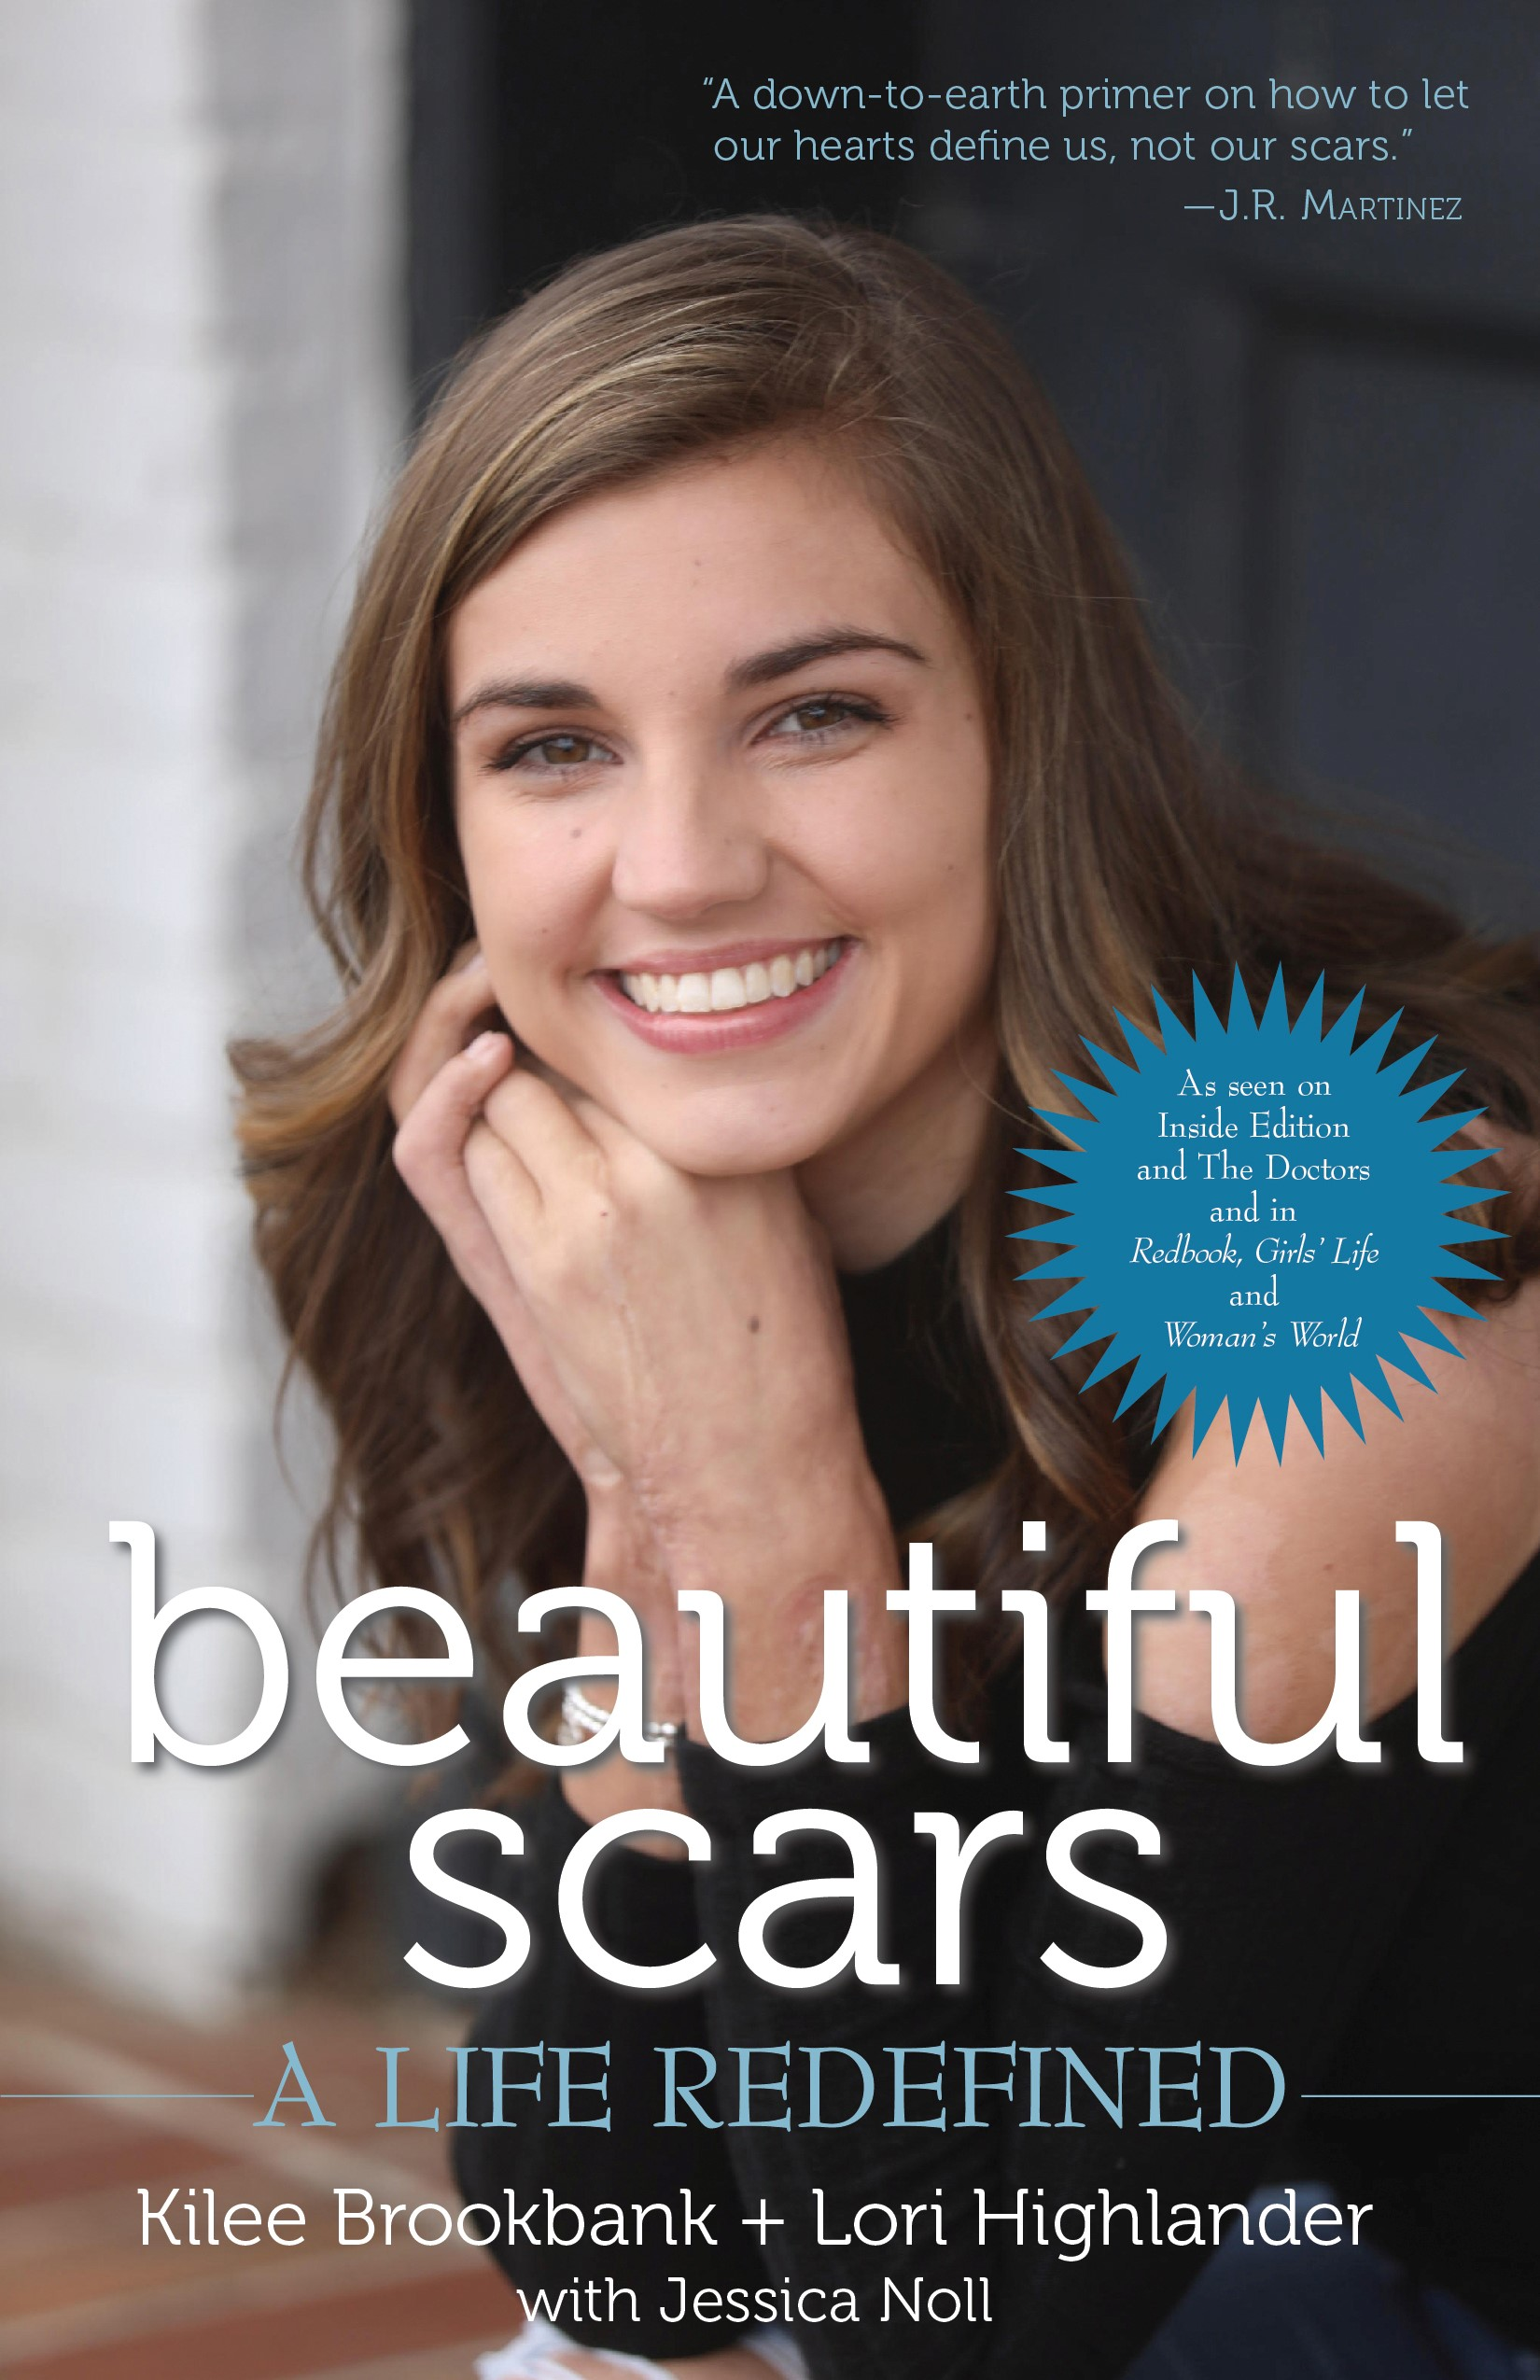 Kilee Brookbank Burn Survivor Beautiful Scars